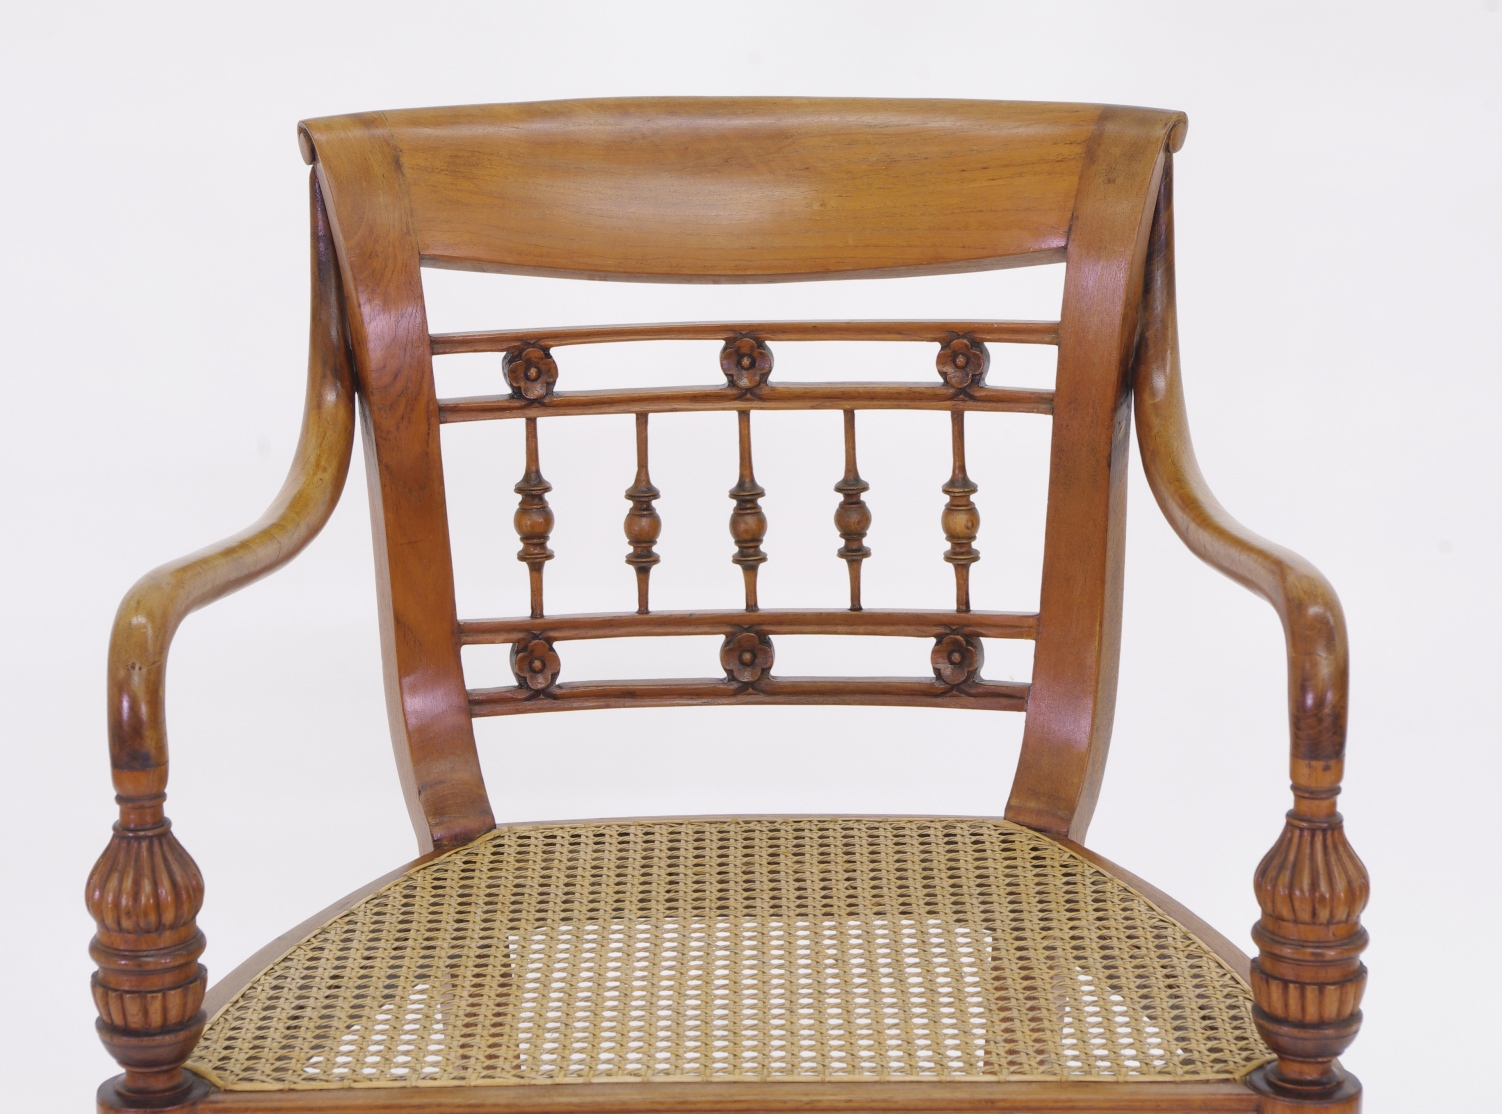 View 8: Set of Six British Colonial Dining Chairs, c. 1830